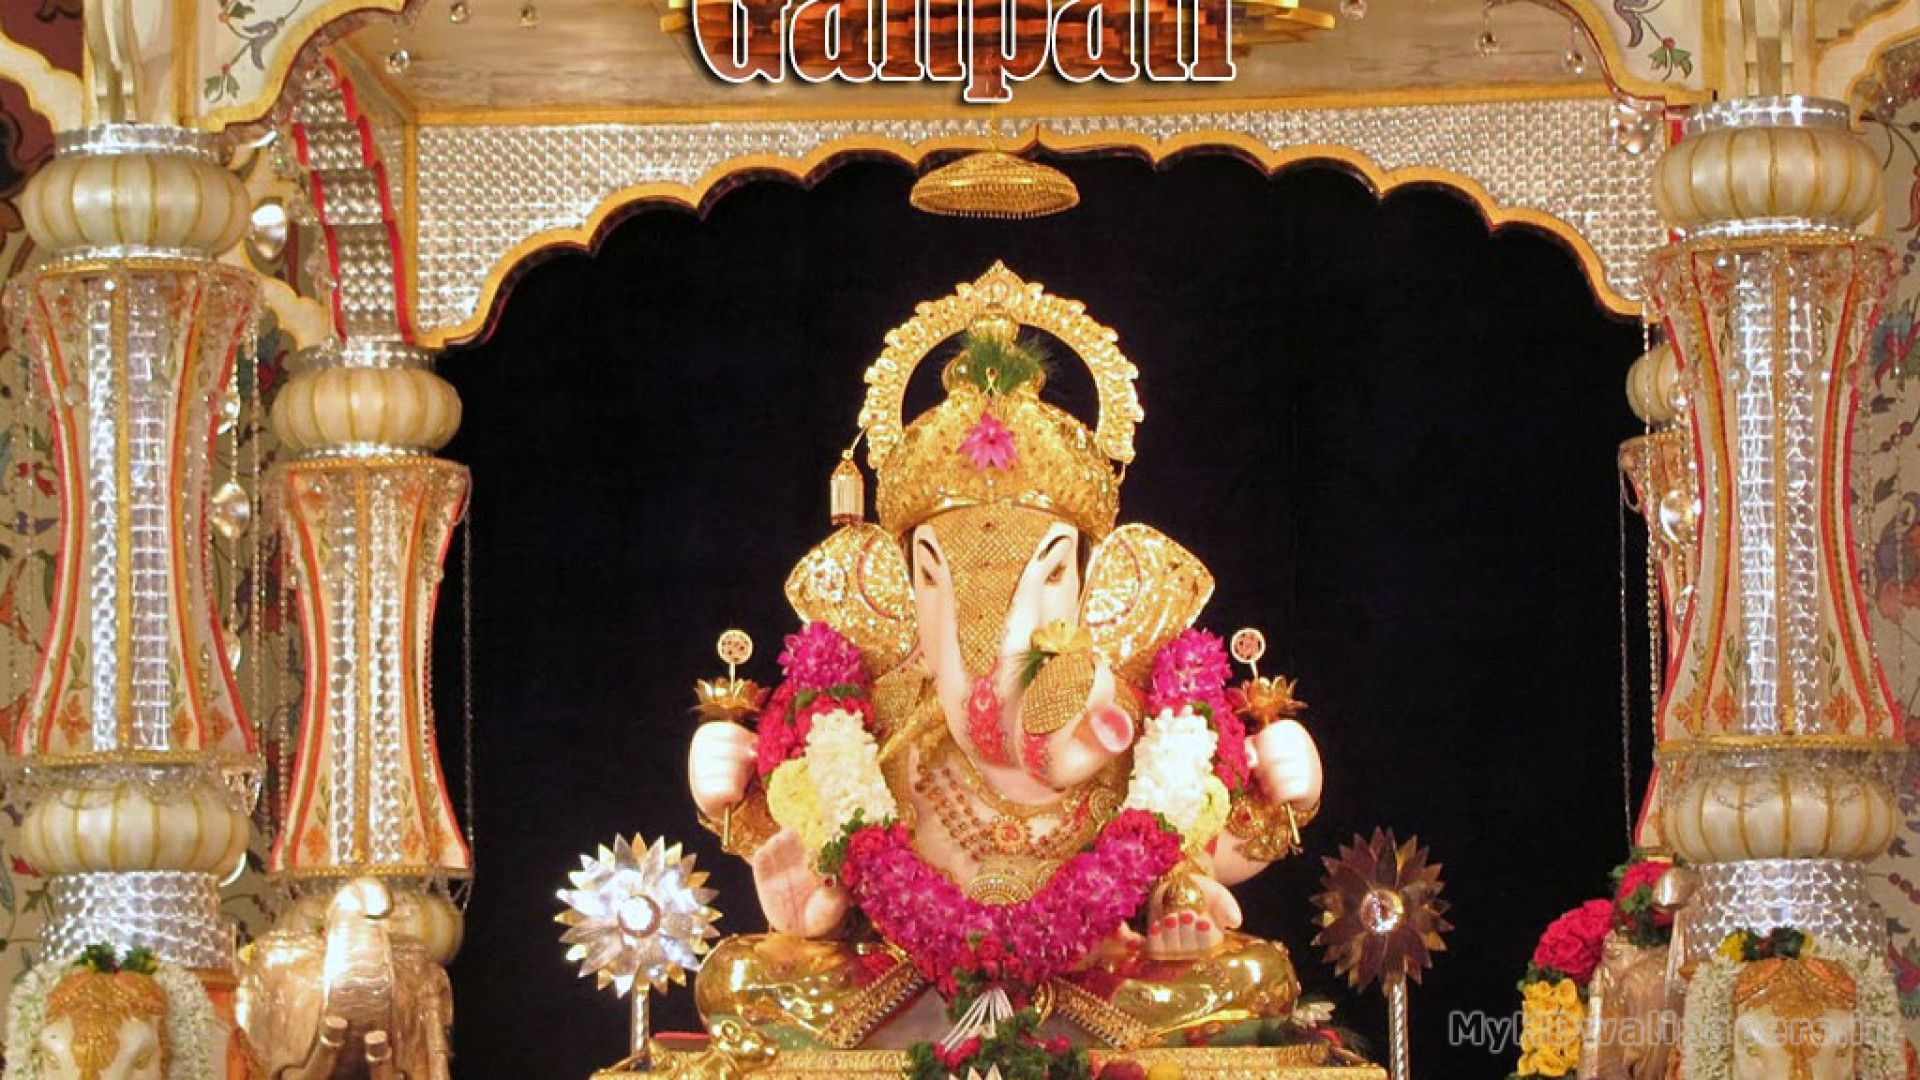 Click here to download in HD Format >>       Siddhivinayak Wallpaper For Pc      http://www.superwallpapers.in/wallpaper/siddhivinayak-wallpaper-for-pc-2.html